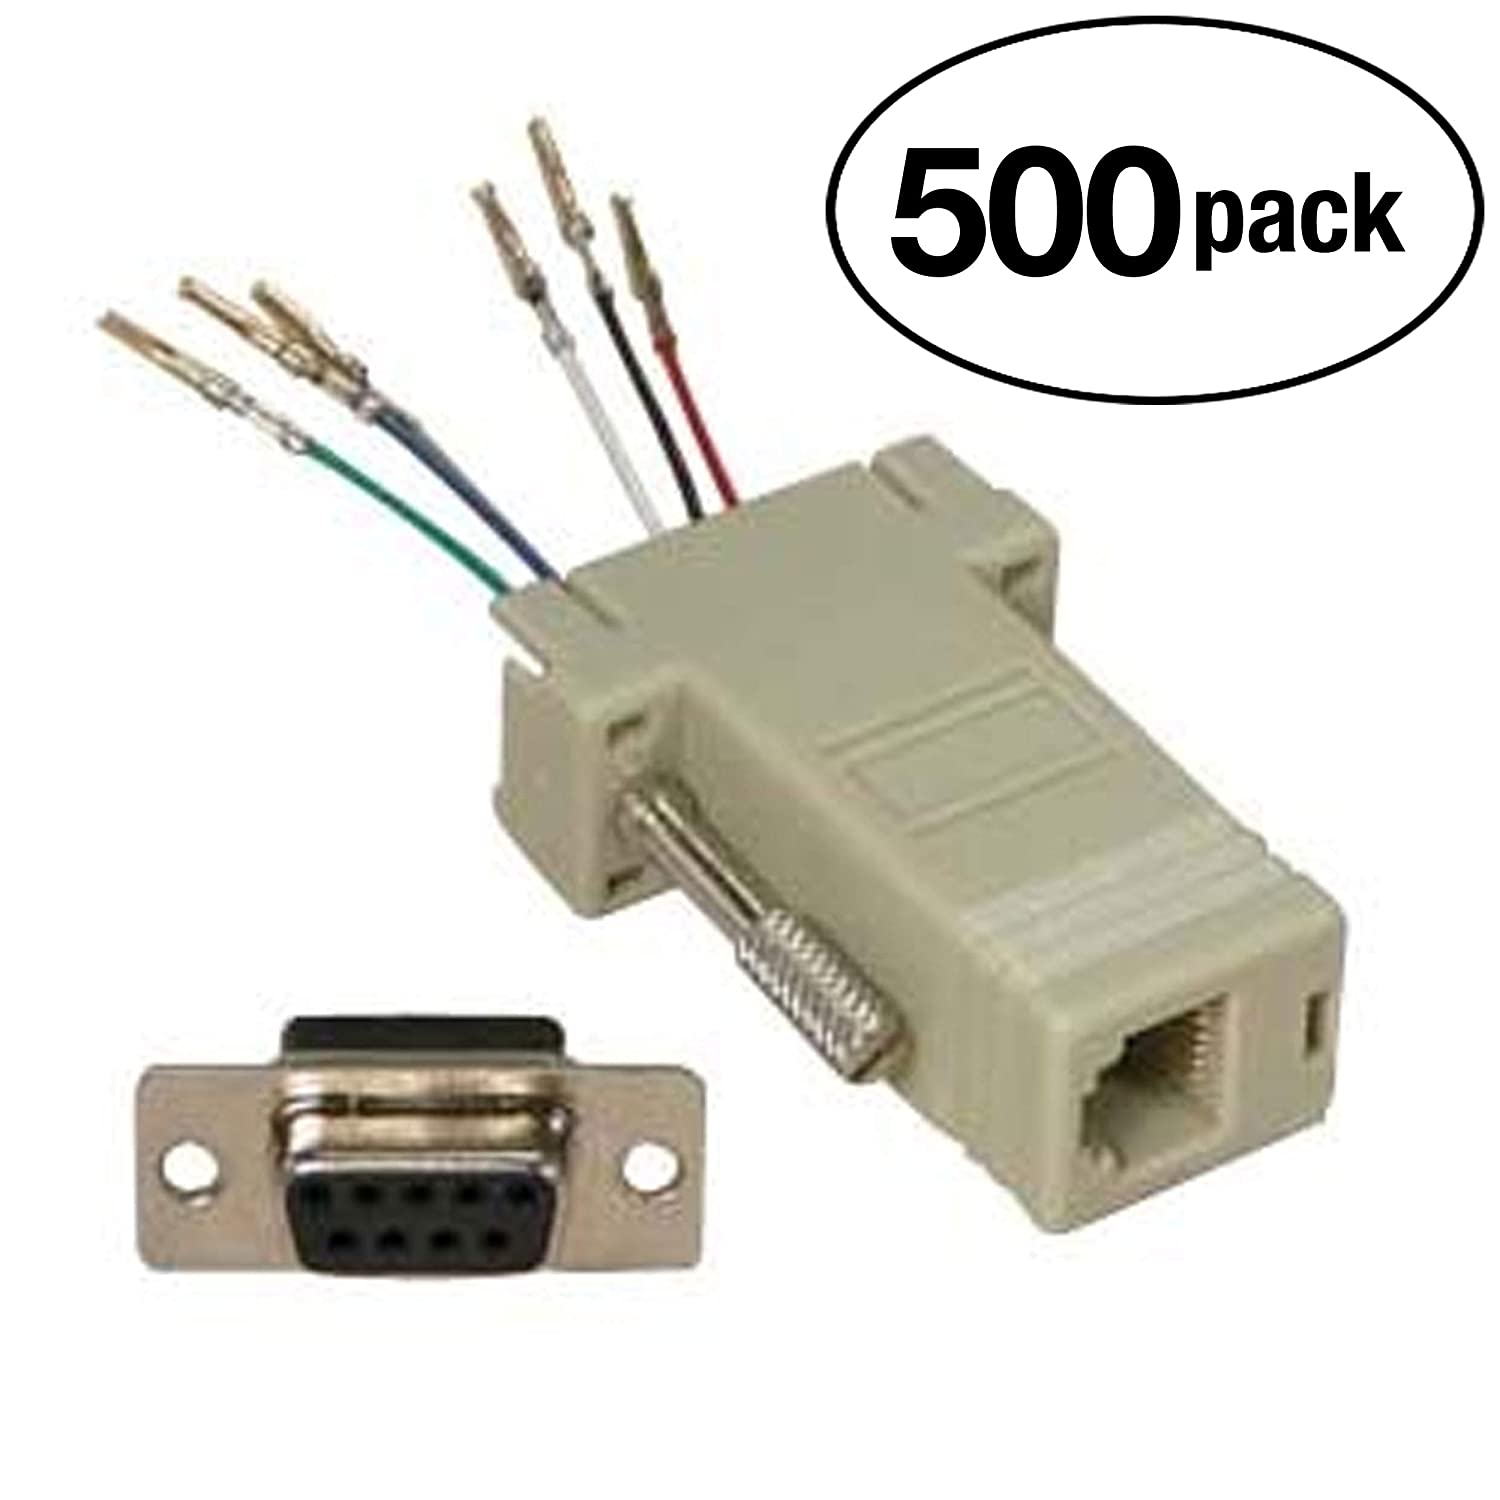 amazon com installerparts db9 female to rj11 12 (6 wire) modularamazon com installerparts db9 female to rj11 12 (6 wire) modular adapter ivory gold plated electronics